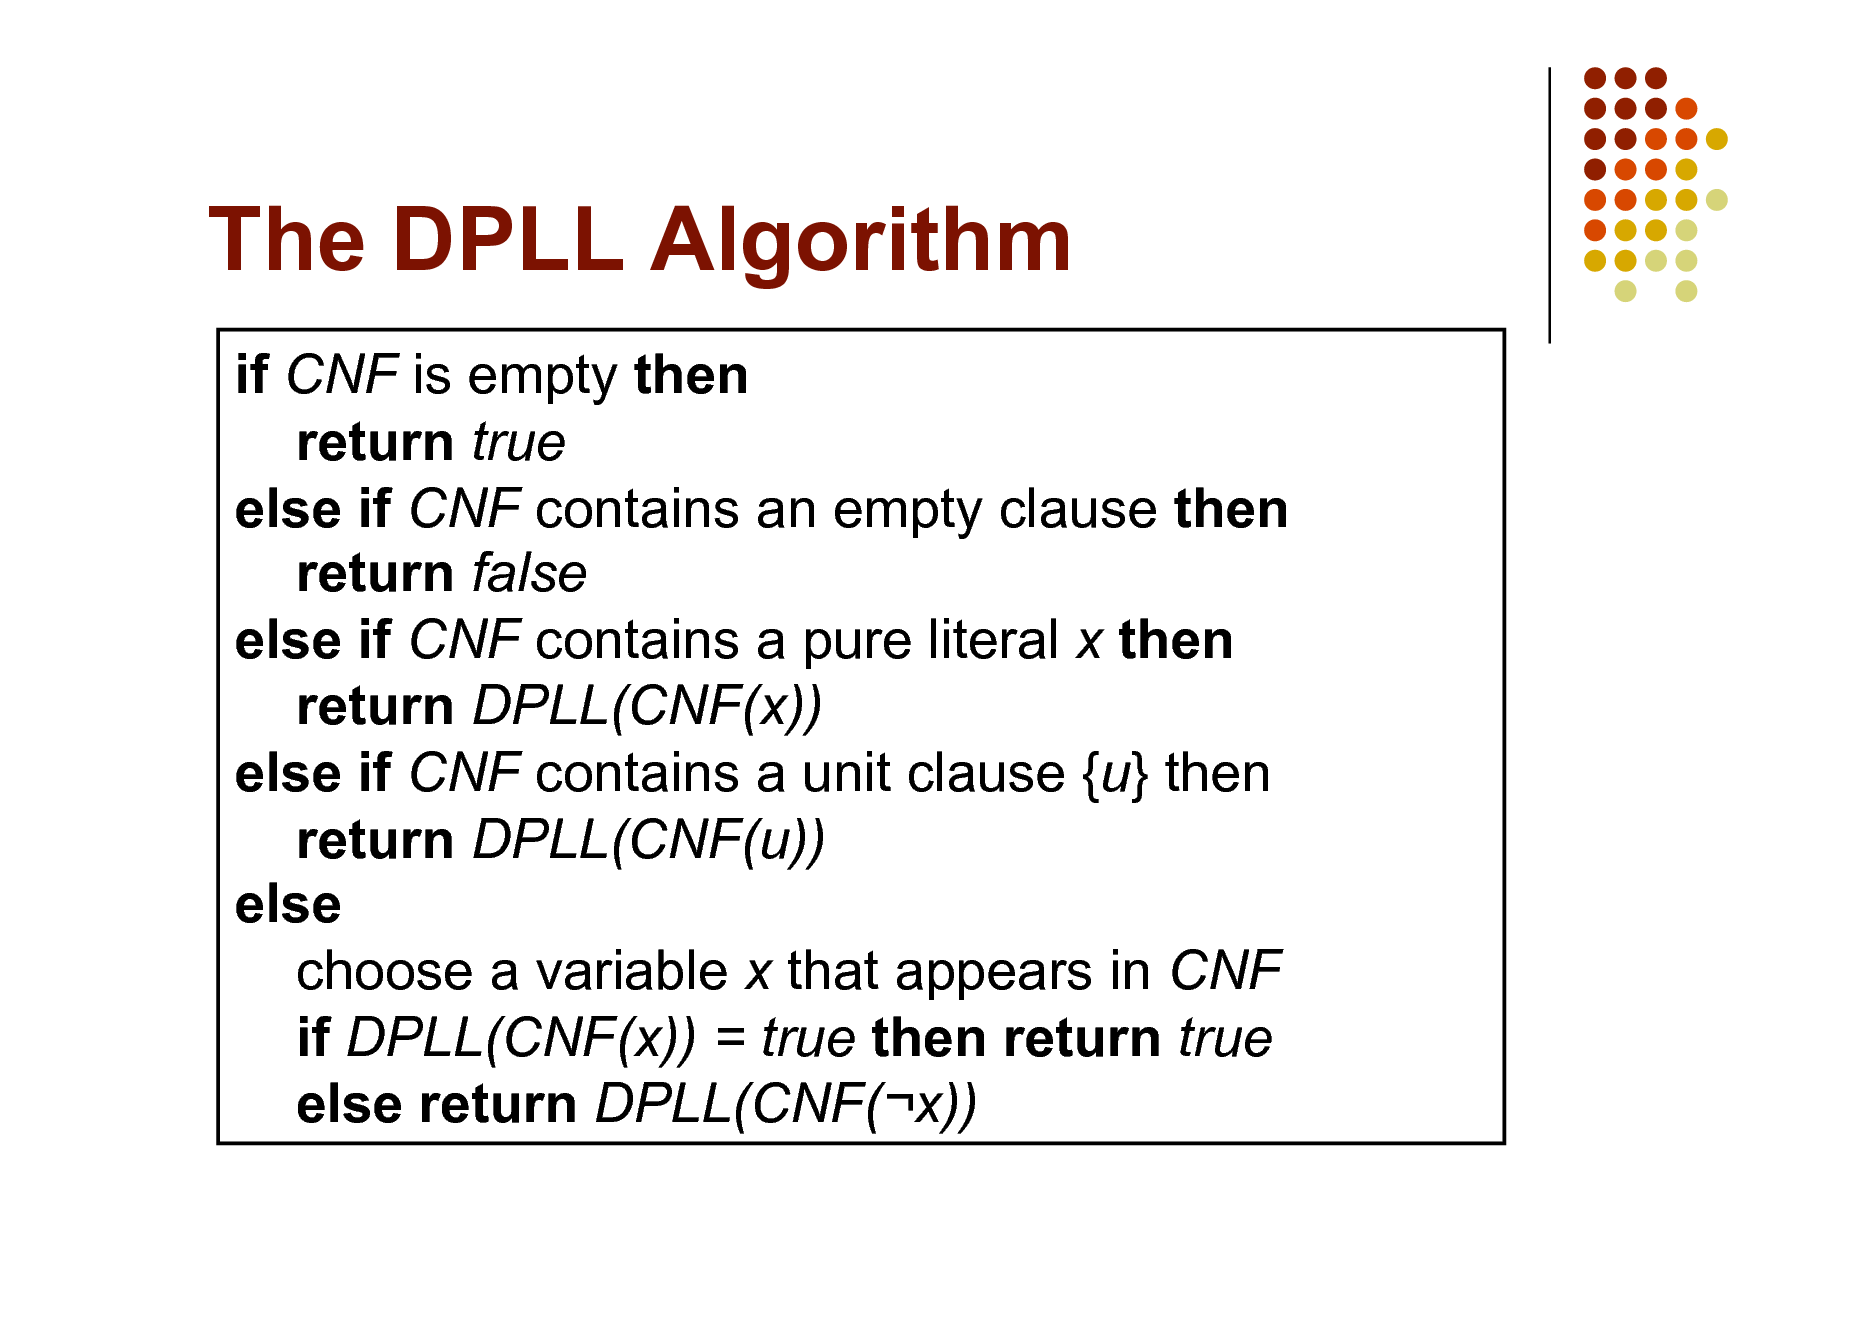 Slide: The DPLL Algorithm if CNF is empty then return true else if CNF contains an empty clause then return false else if CNF contains a pure literal x then return DPLL(CNF(x)) else if CNF contains a unit clause {u} then return DPLL(CNF(u)) else choose a variable x that appears in CNF if DPLL(CNF(x)) = true then return true else return DPLL(CNF(x))